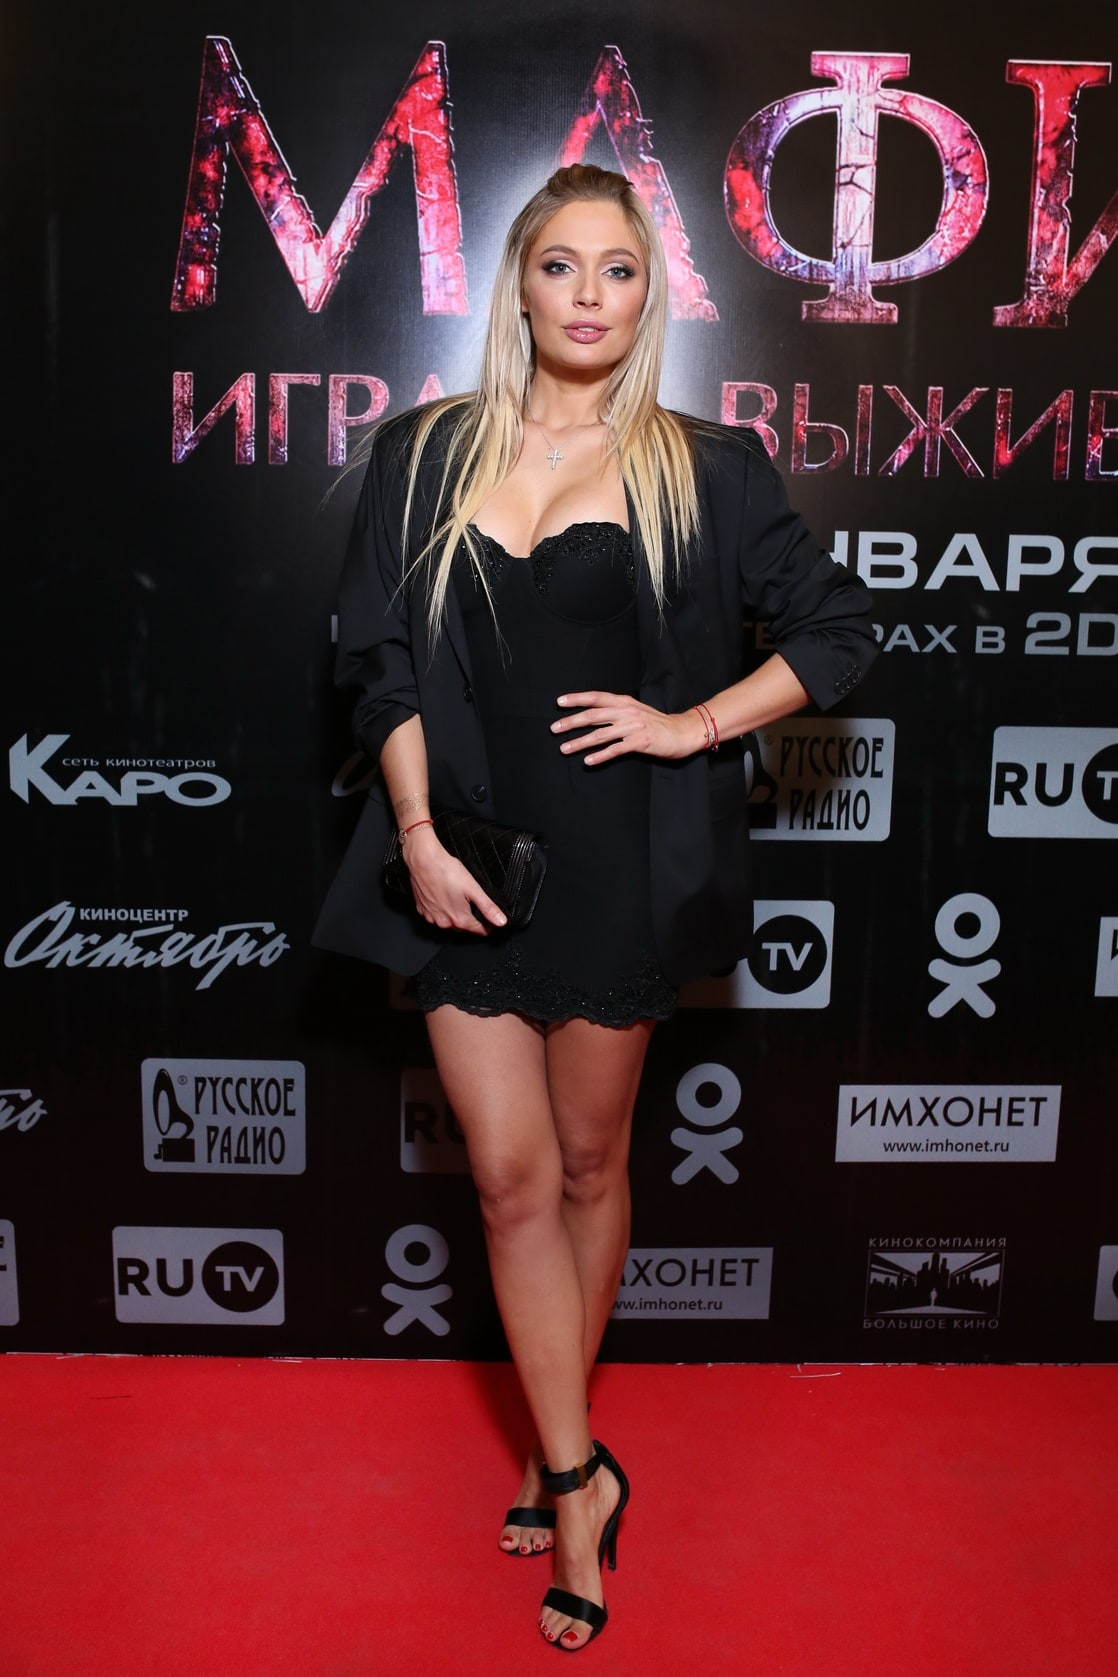 Natalya Rudova photos